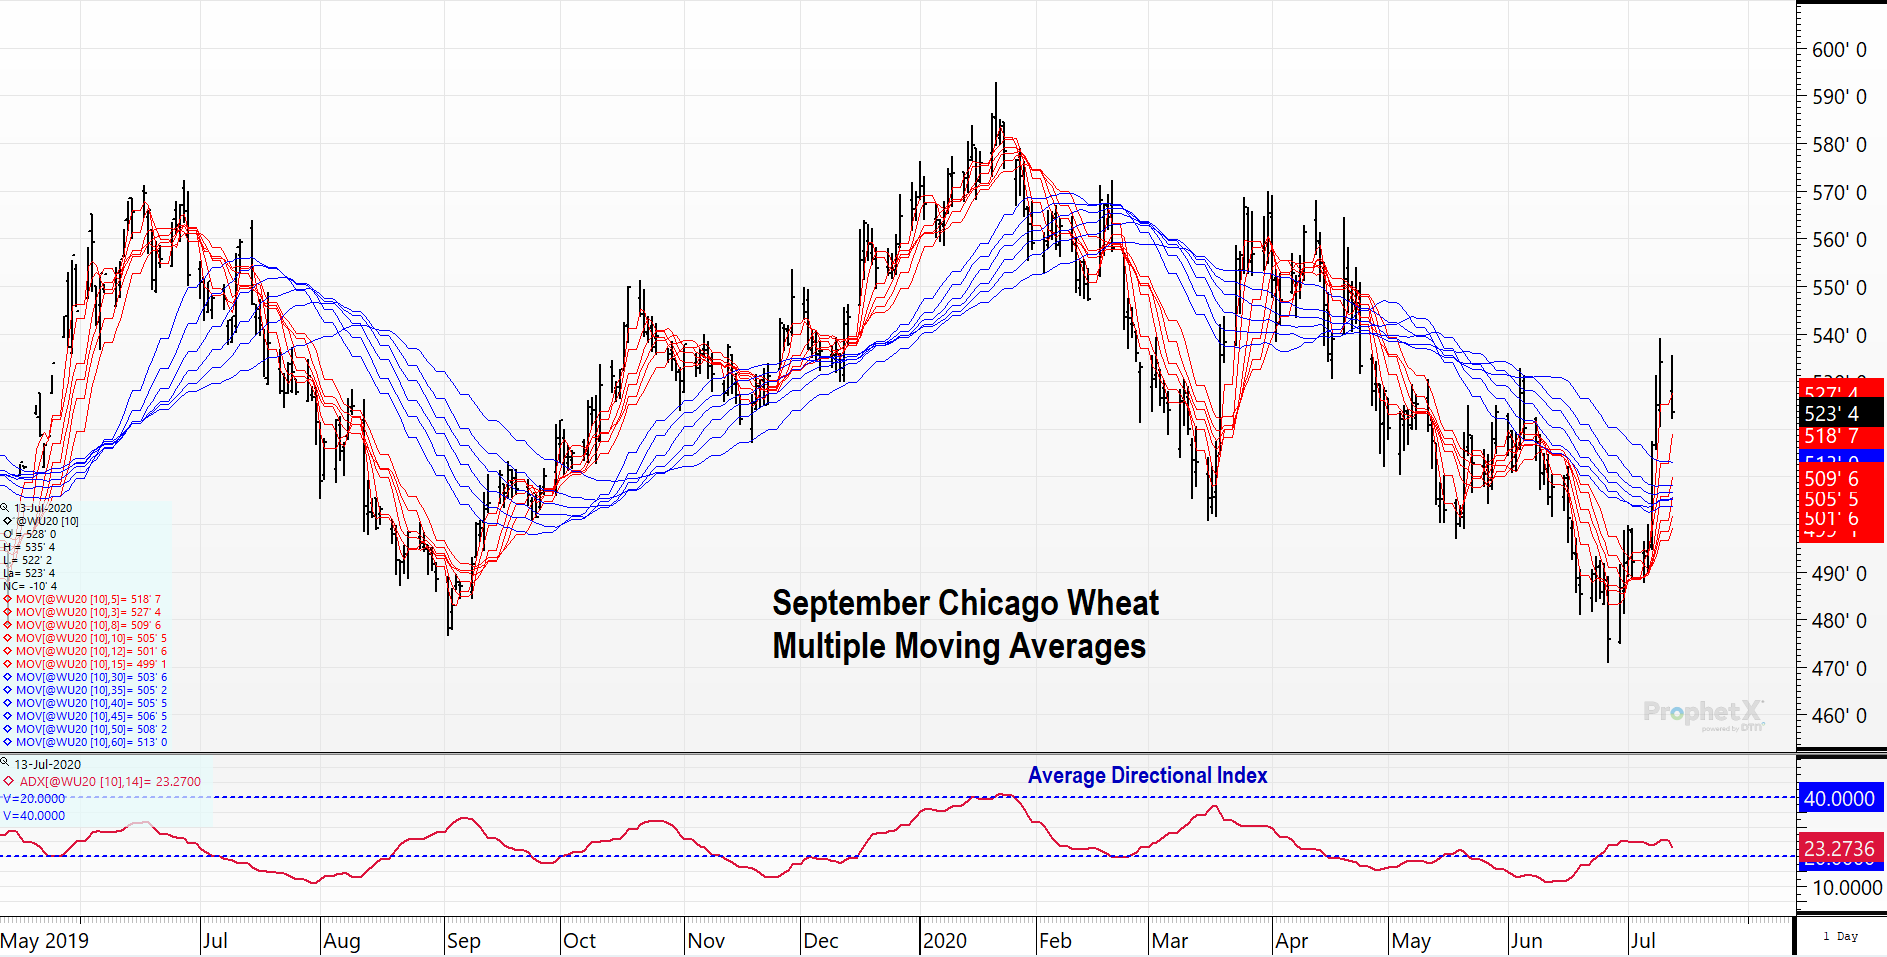 Wheat Multiple Moving Averages